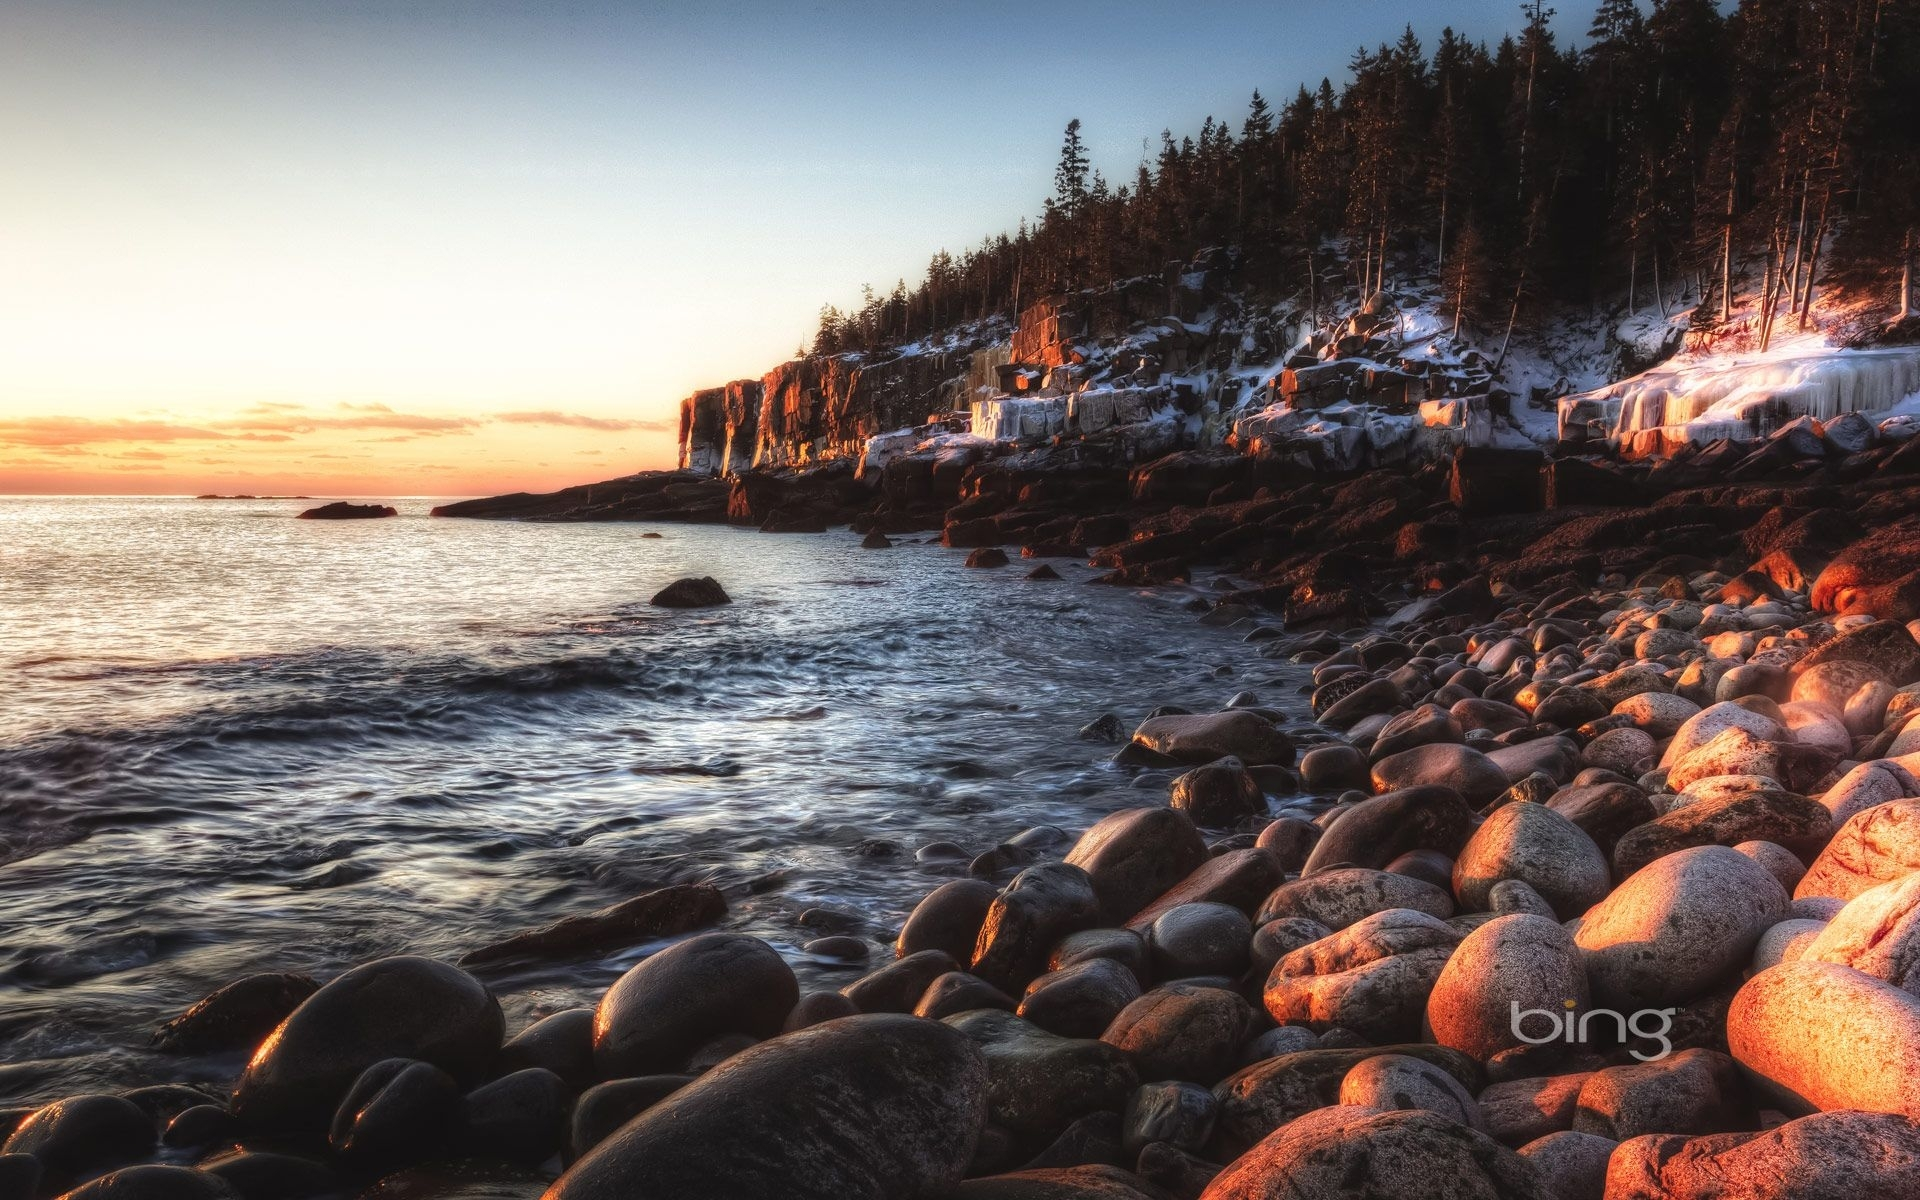 acadia national park wallpapers - wallpaper cave